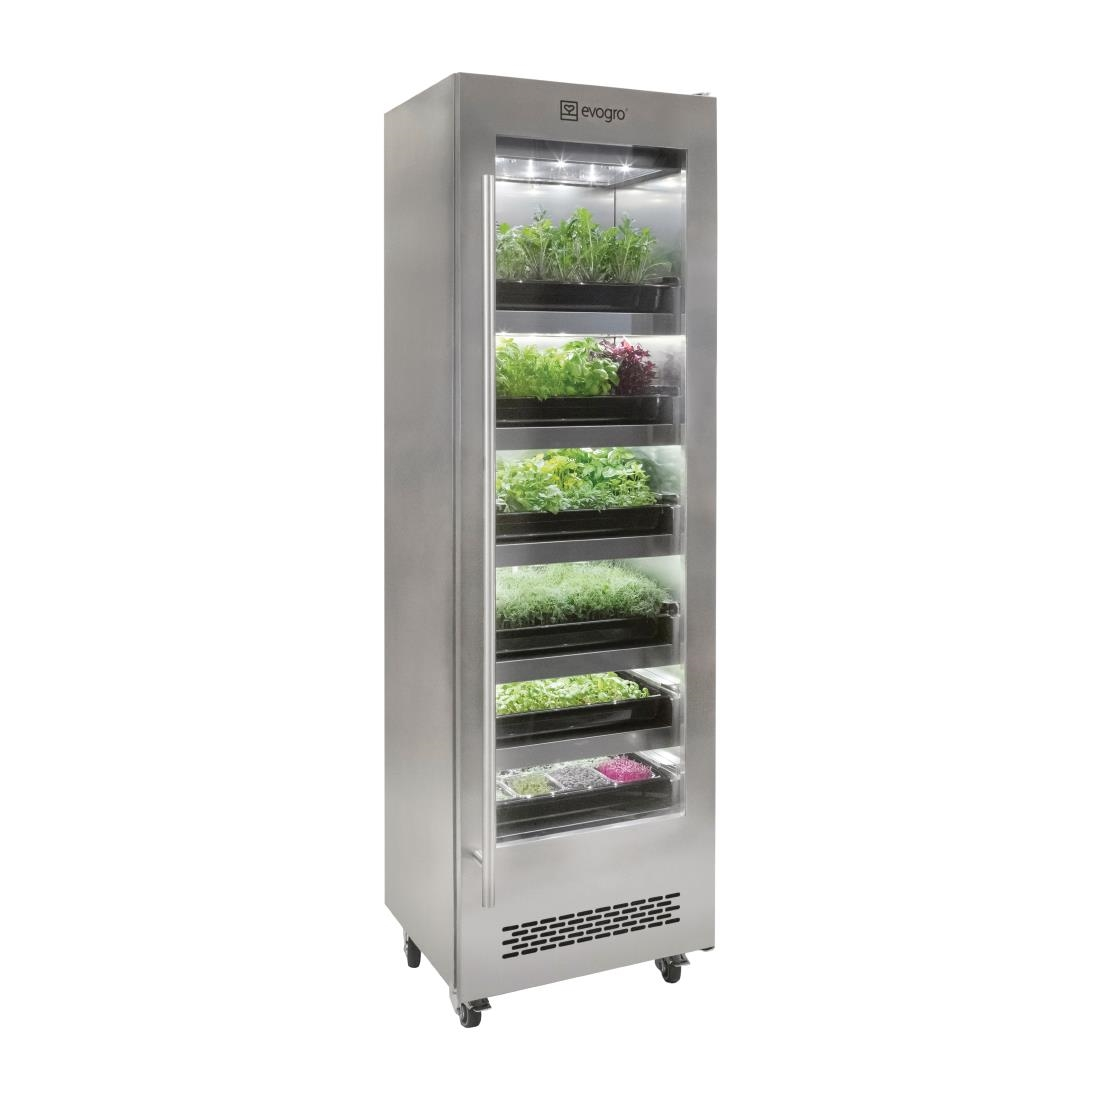 Image of Evogro Plant Growing System 40132-WS L